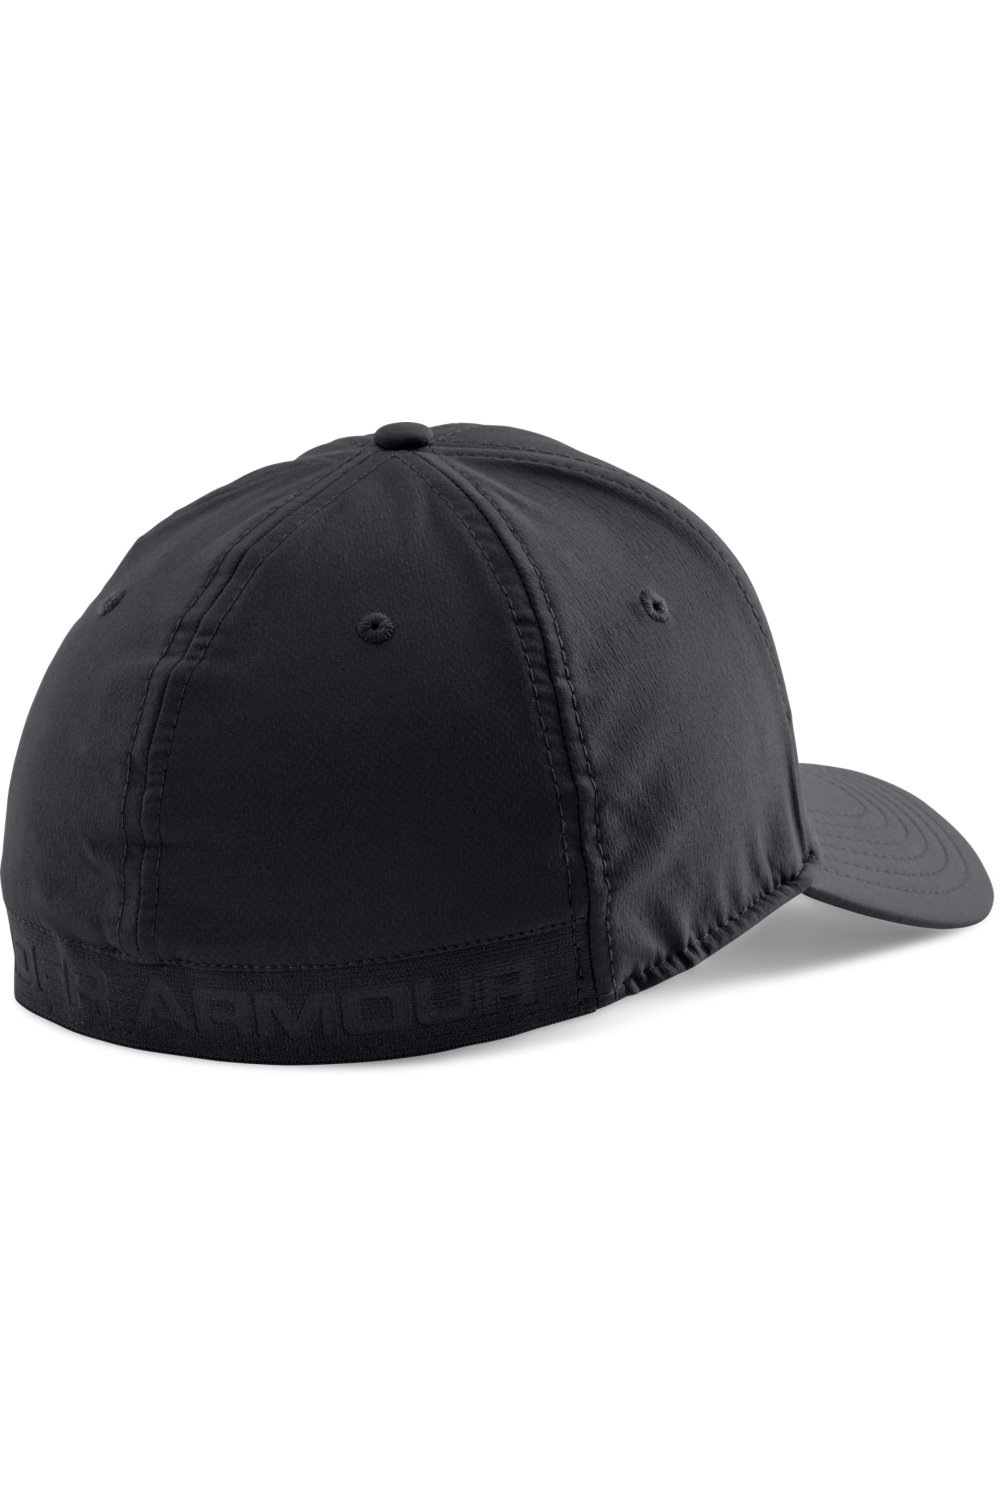 Under Armour czarna męska czapka z daszkiem HeatGear Headline Stretch Fit Cap